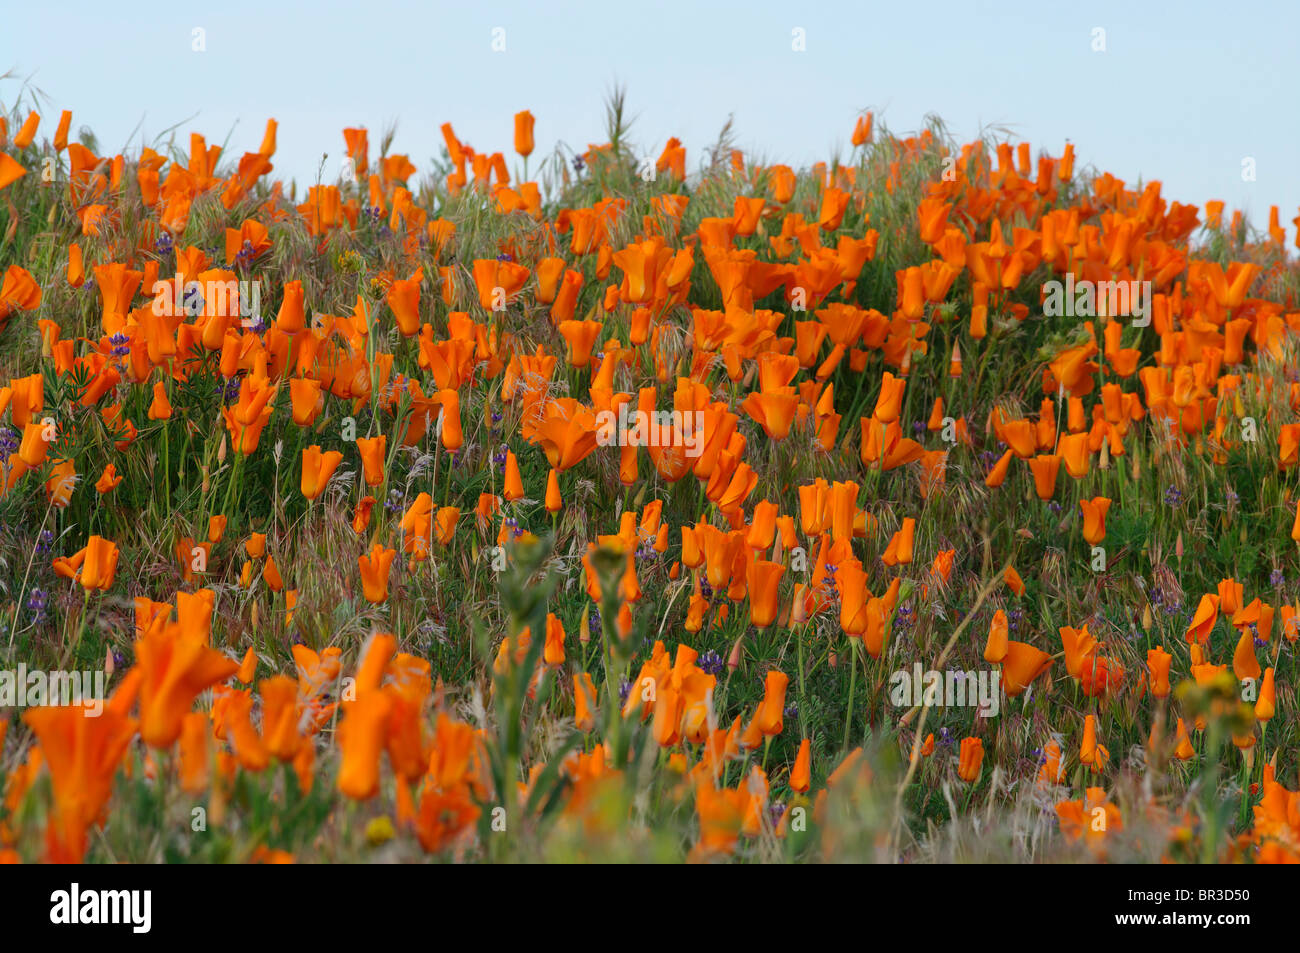 Wild poppies at the Antelope Valley California Poppy Reserve, California. - Stock Image